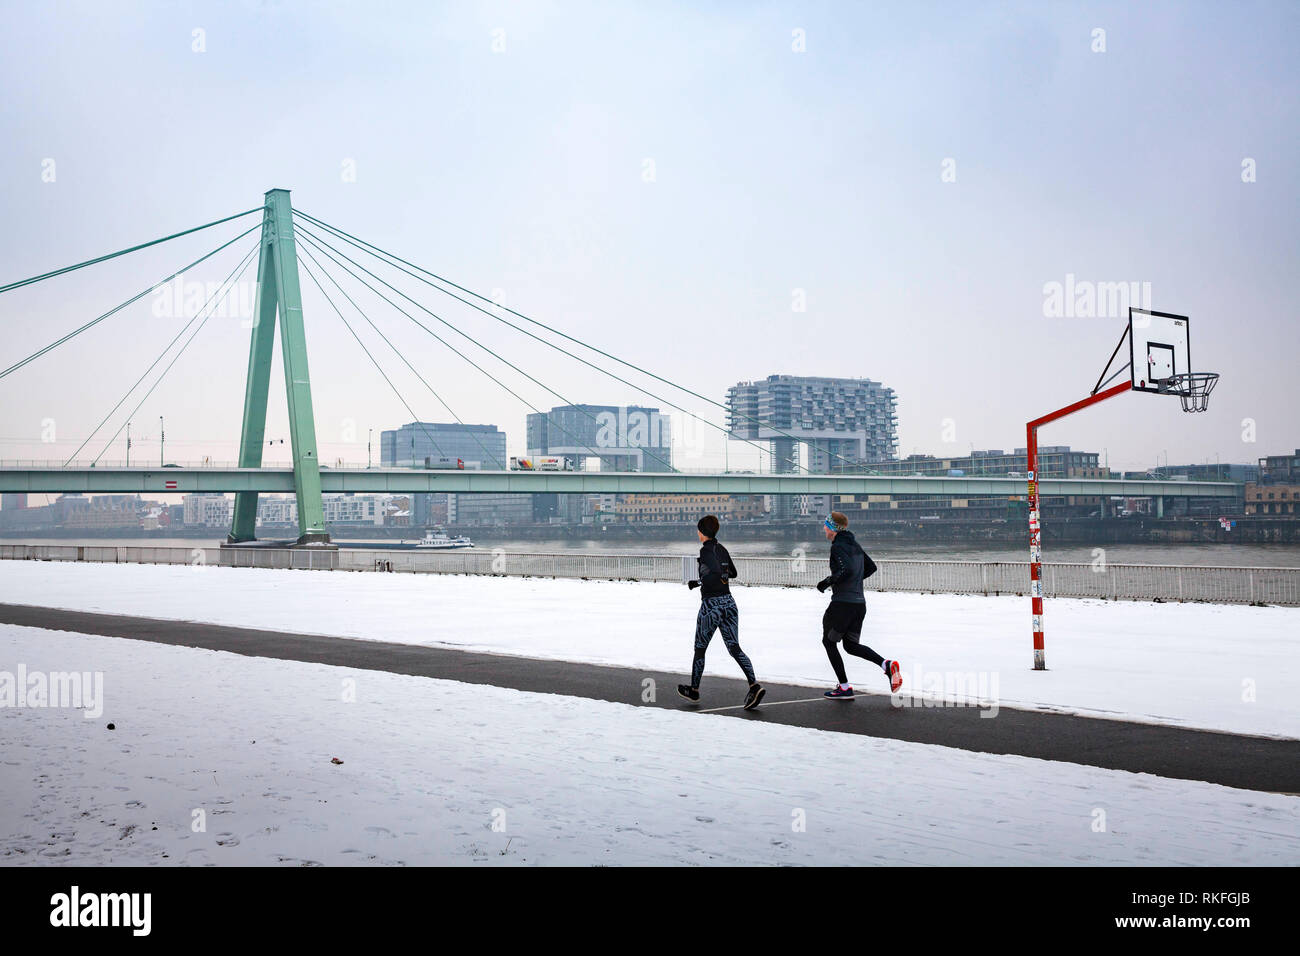 jogger on the Rhine riverbank in the district Deutz, the Severins bridge, in the background the Rheinau harbor, snow, winter, Cologne, Germany.  Jogge - Stock Image